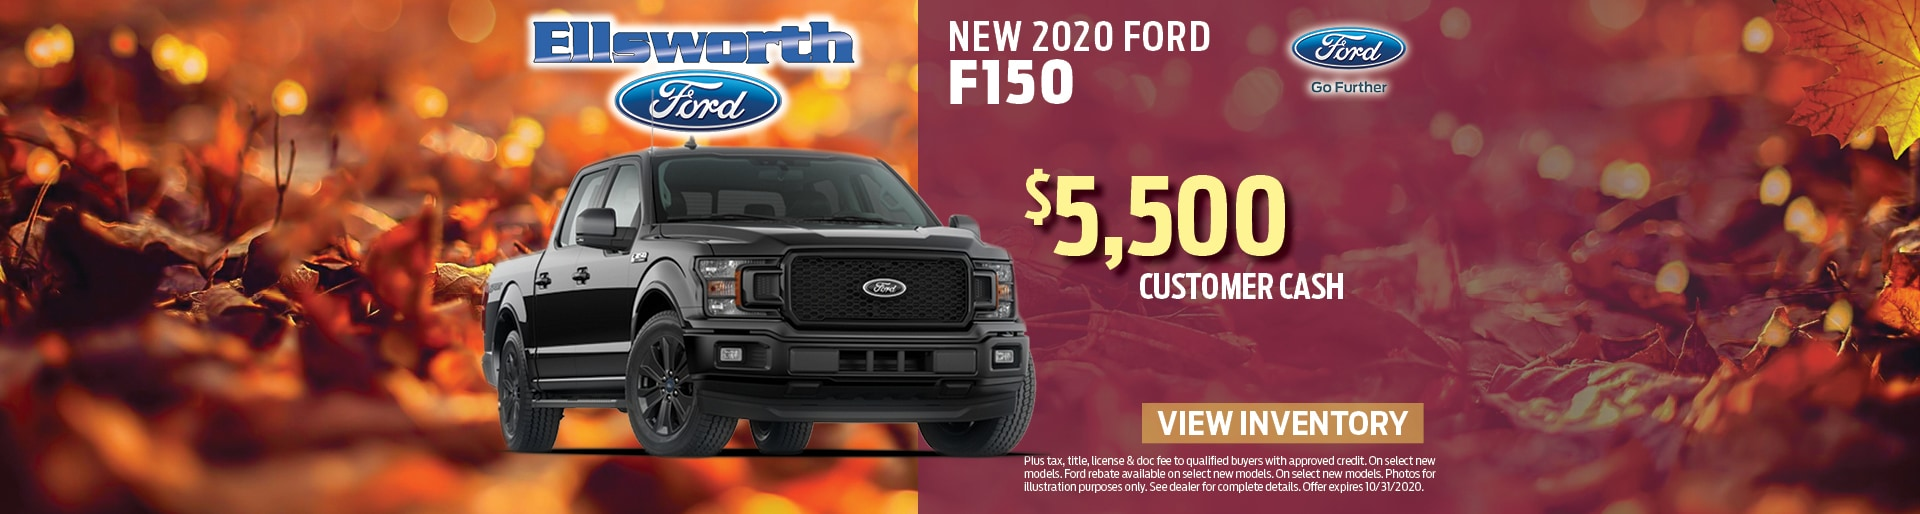 New 2020 Ford F-150 Ford Customer Cash | Ellsworth, WI